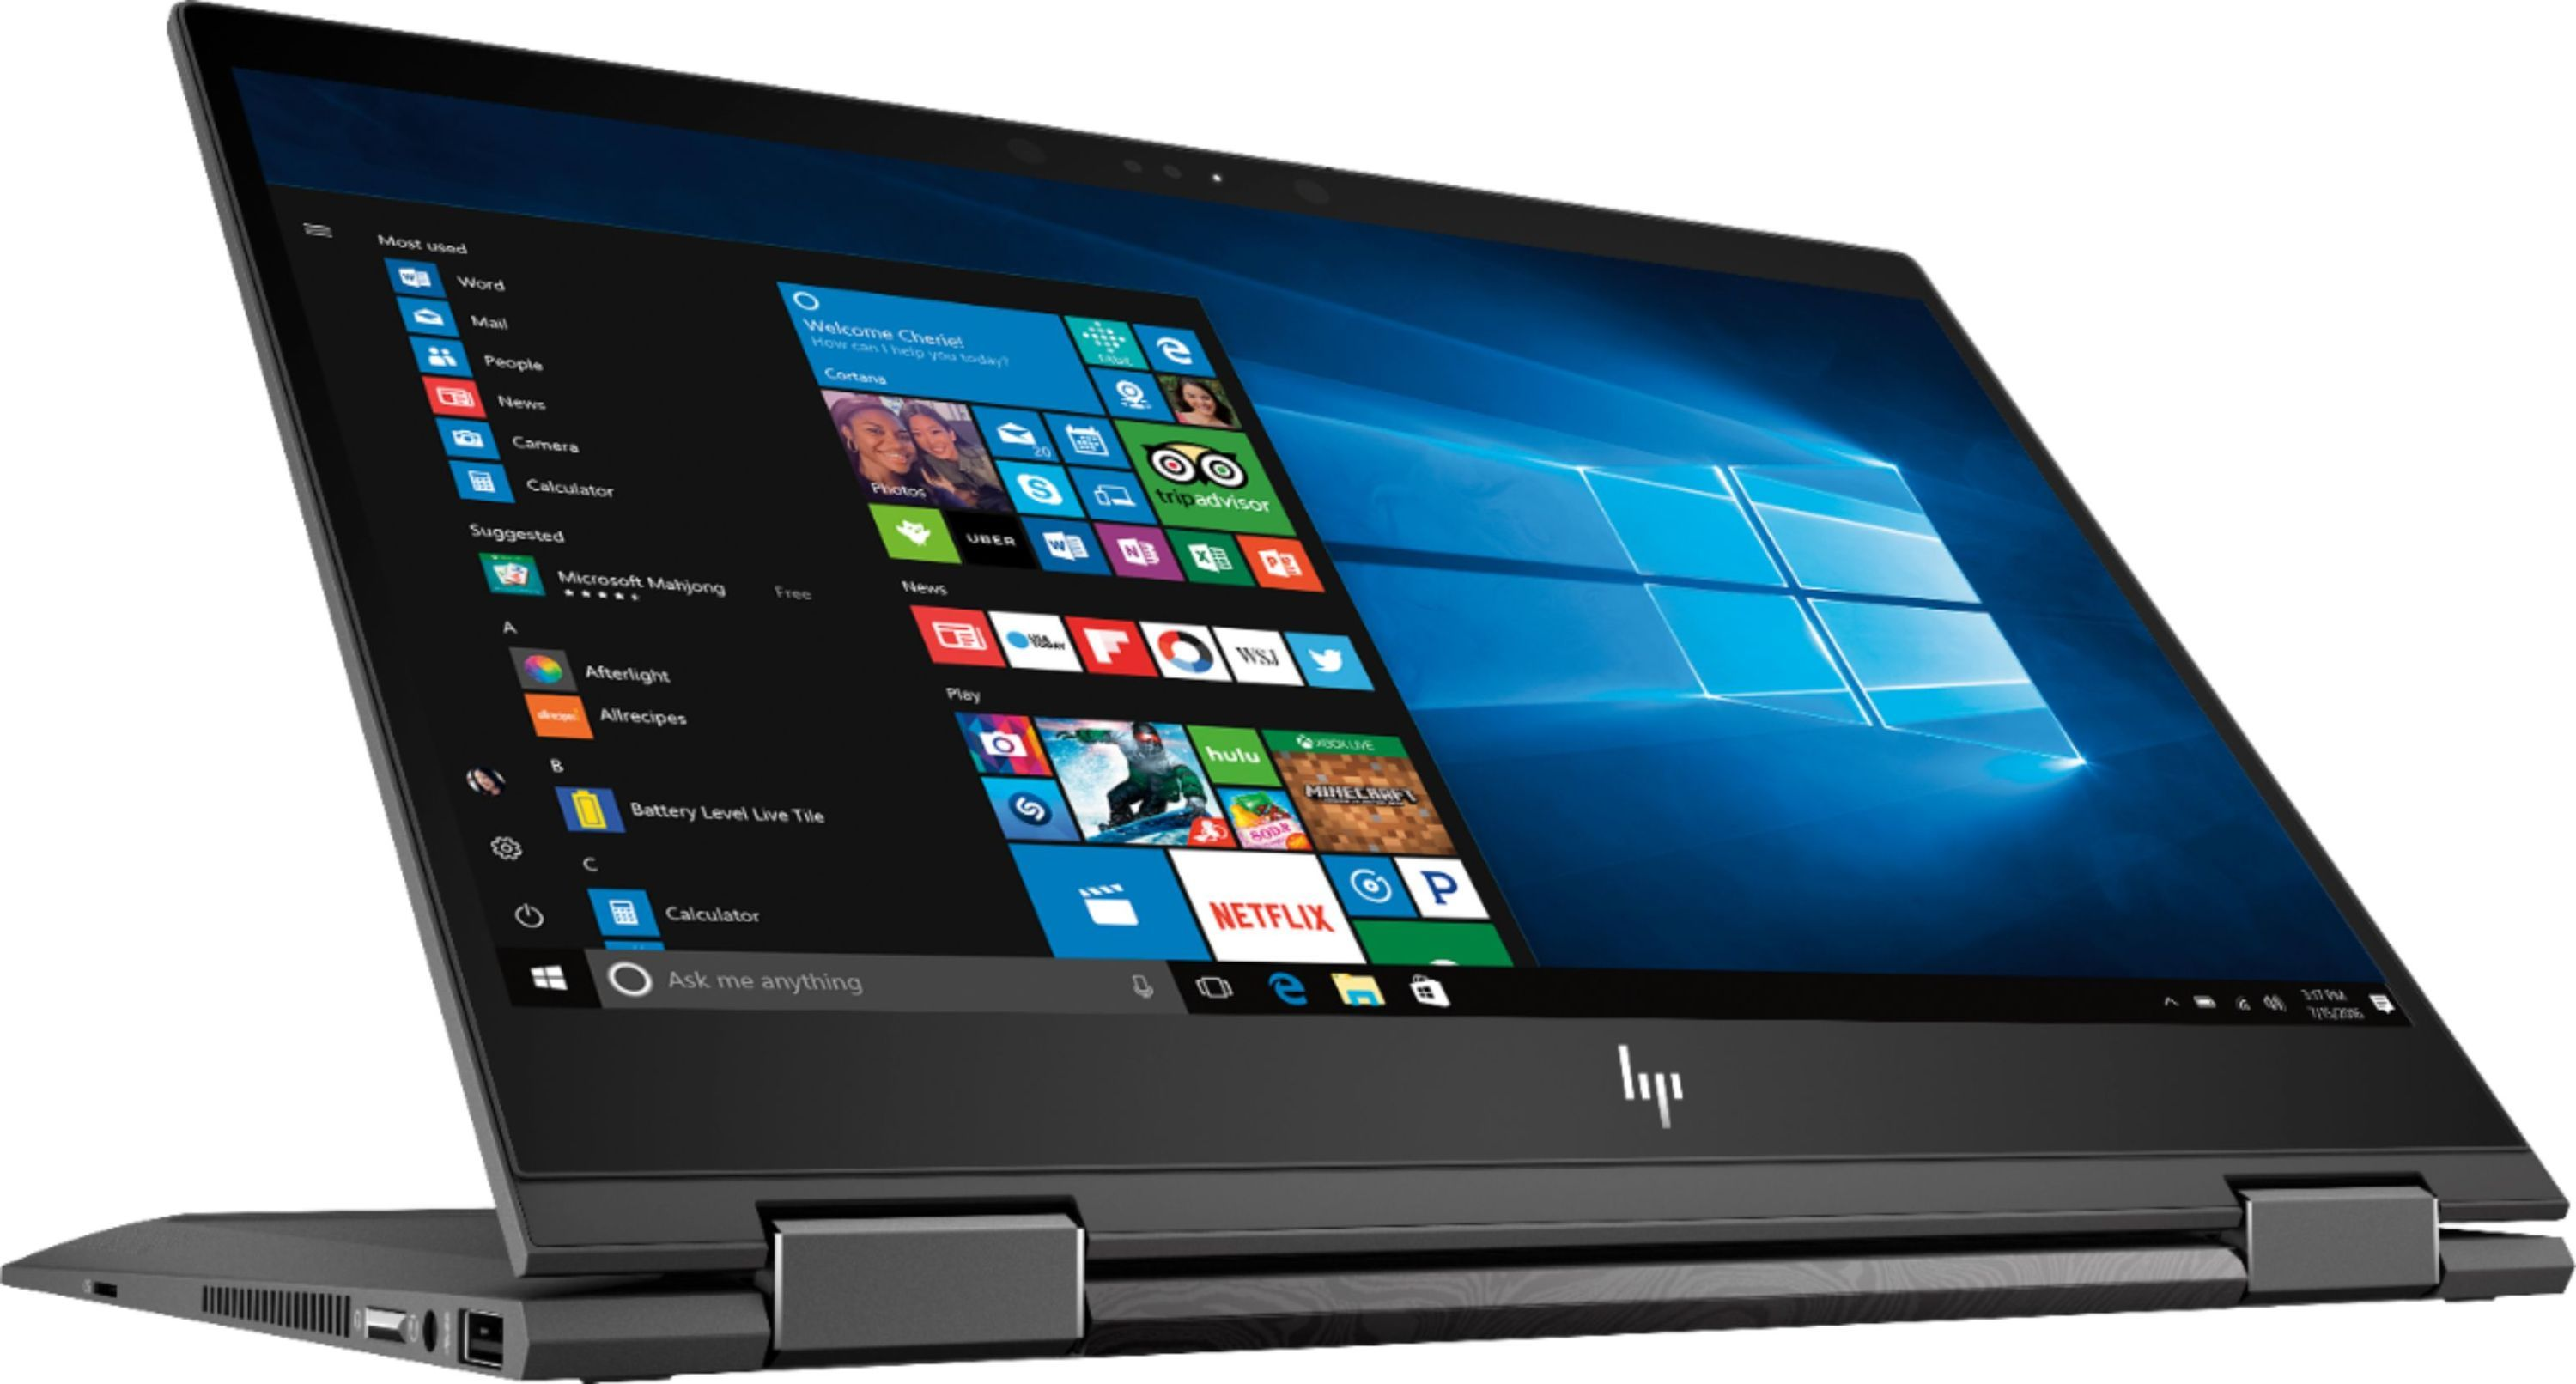 HP Envy x360 Laptop Review 2018 Cool things to buy, Quad